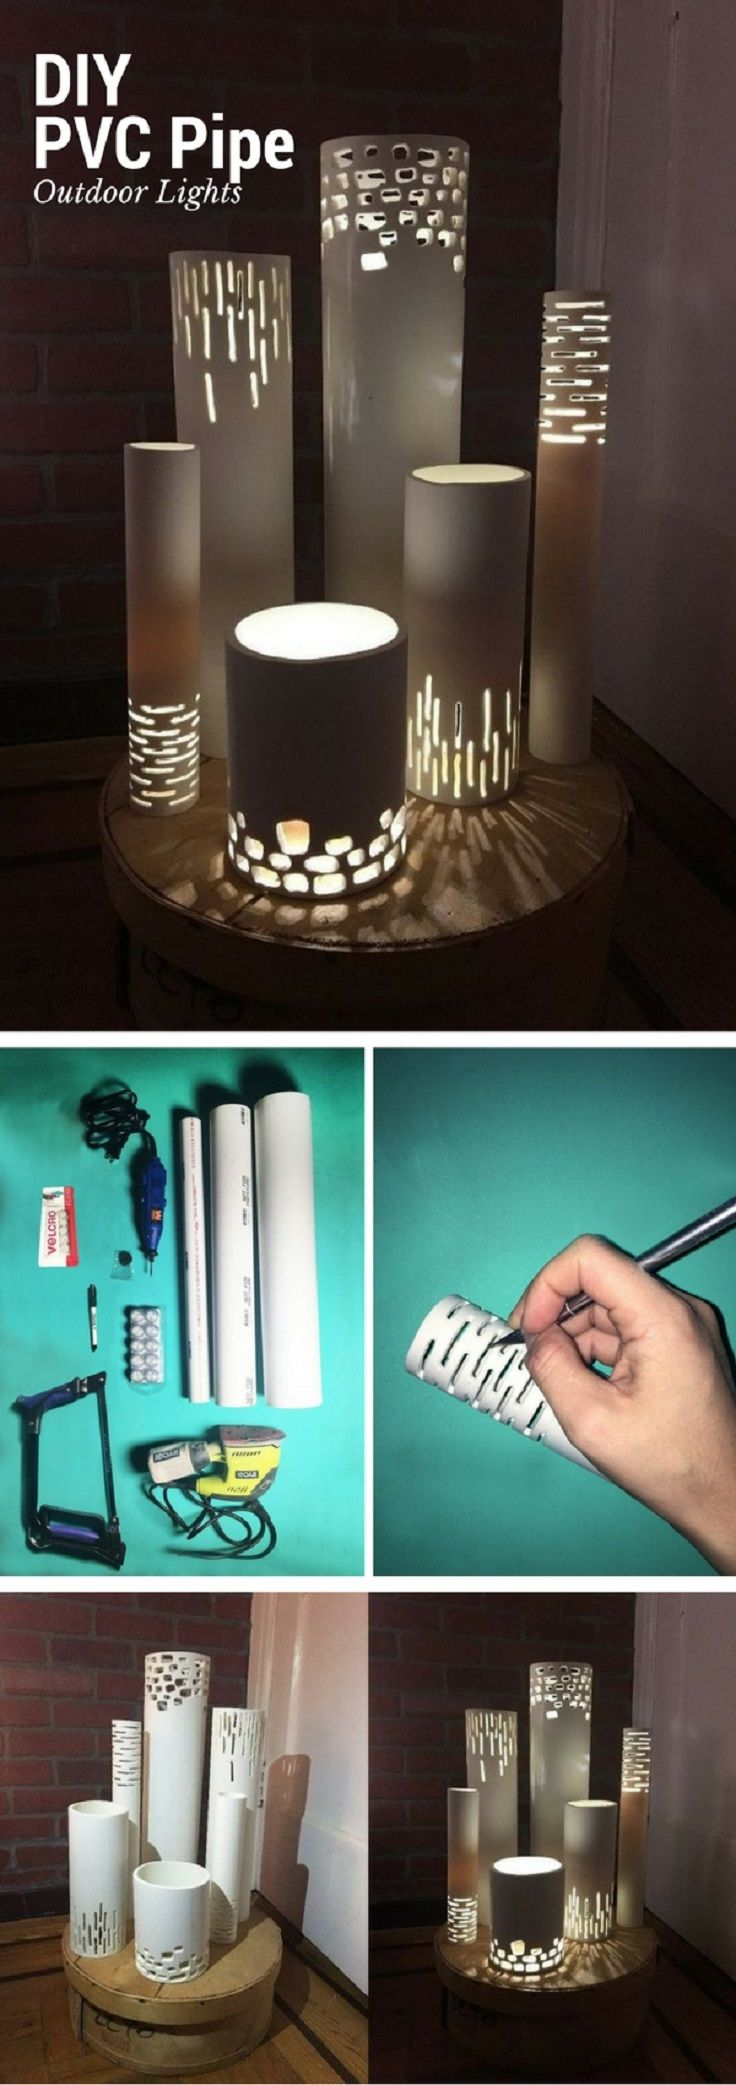 DIY PVC Pipe Outdoor Lights - 9 Hyper-Creative DIY Outdoor Lighting Ideas For Your Backyard